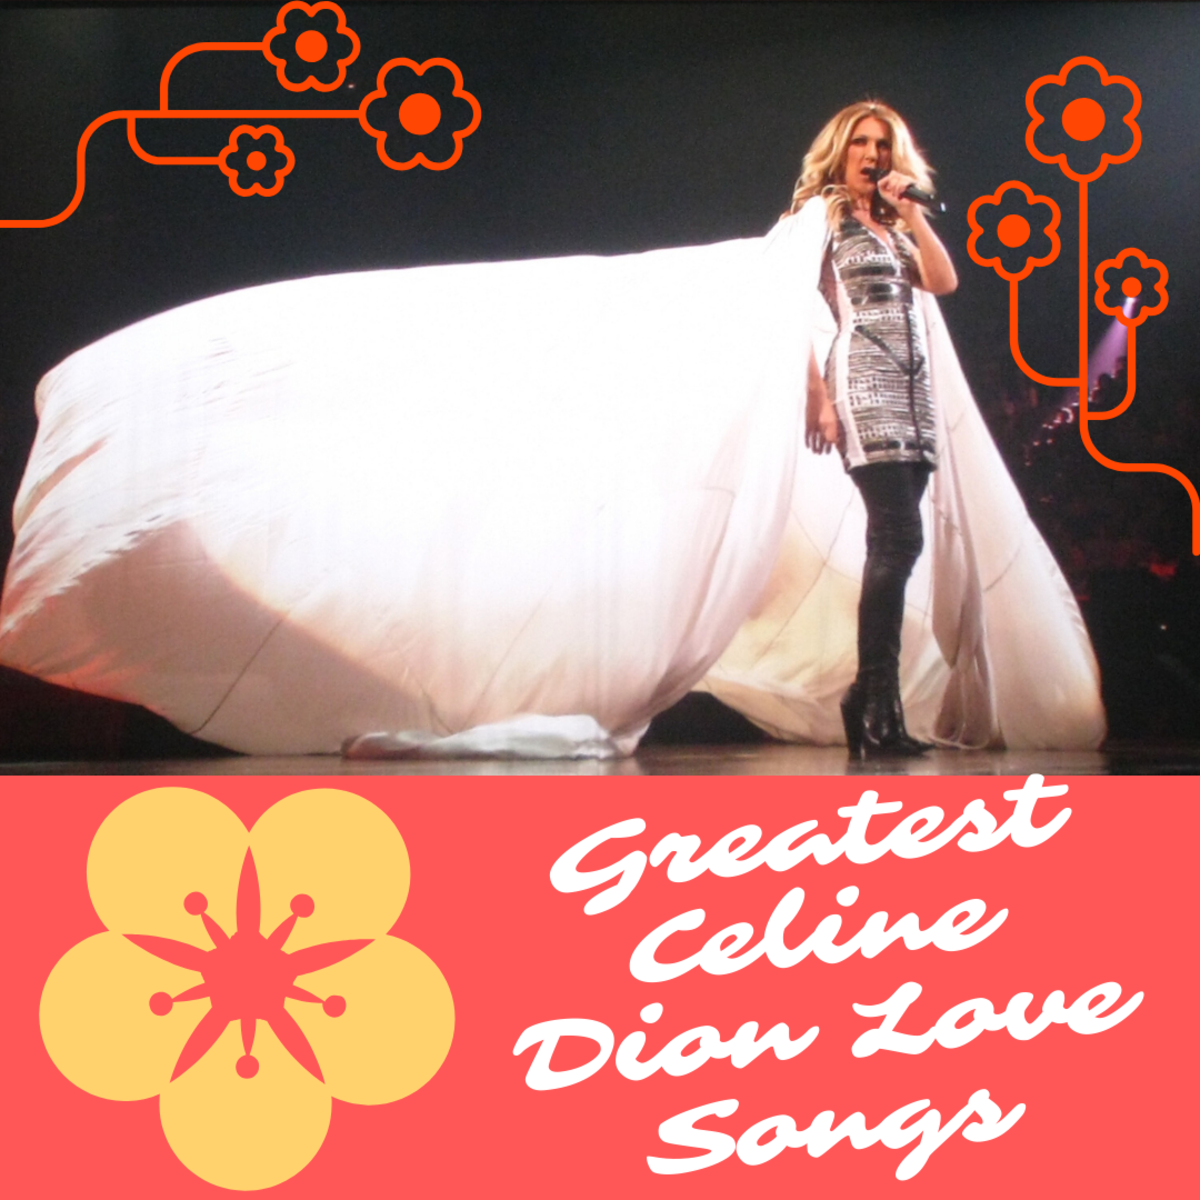 Top 10 Greatest Celine Dion Love Songs